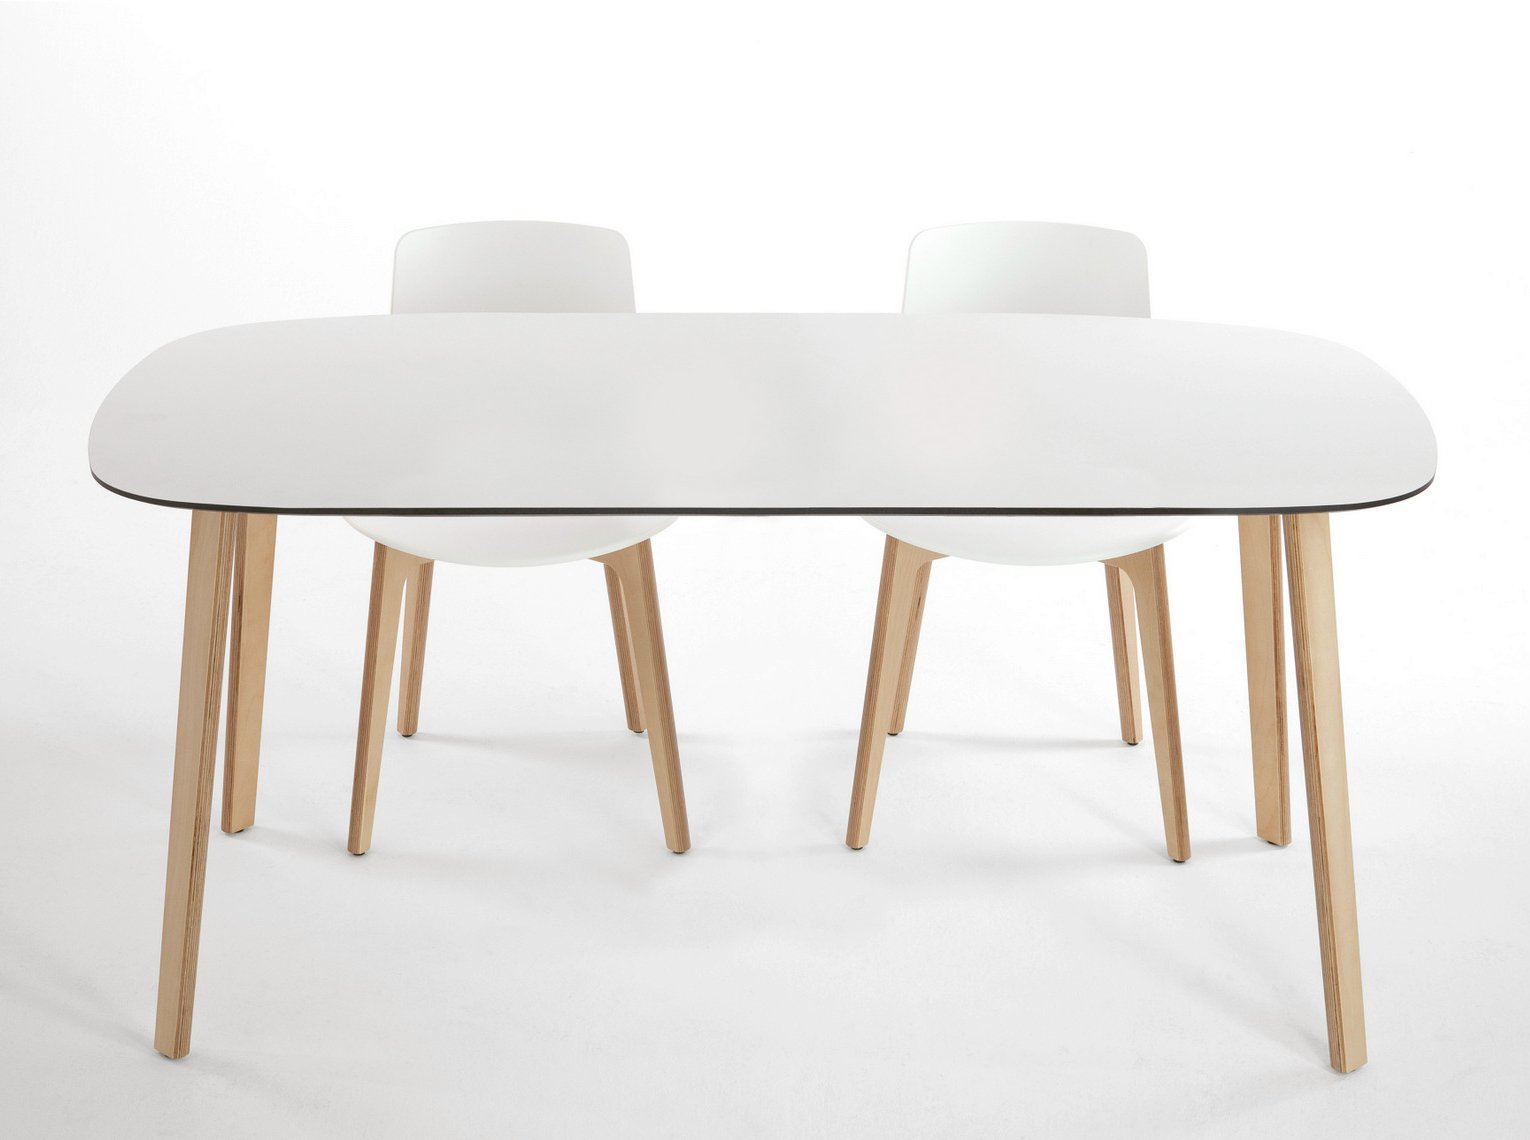 #896842 LOTTUS WOOD Table Rectangulaire By ENEA Design Lievore  4057 table salle a manger contemporaine ovale 1530x1140 px @ aertt.com